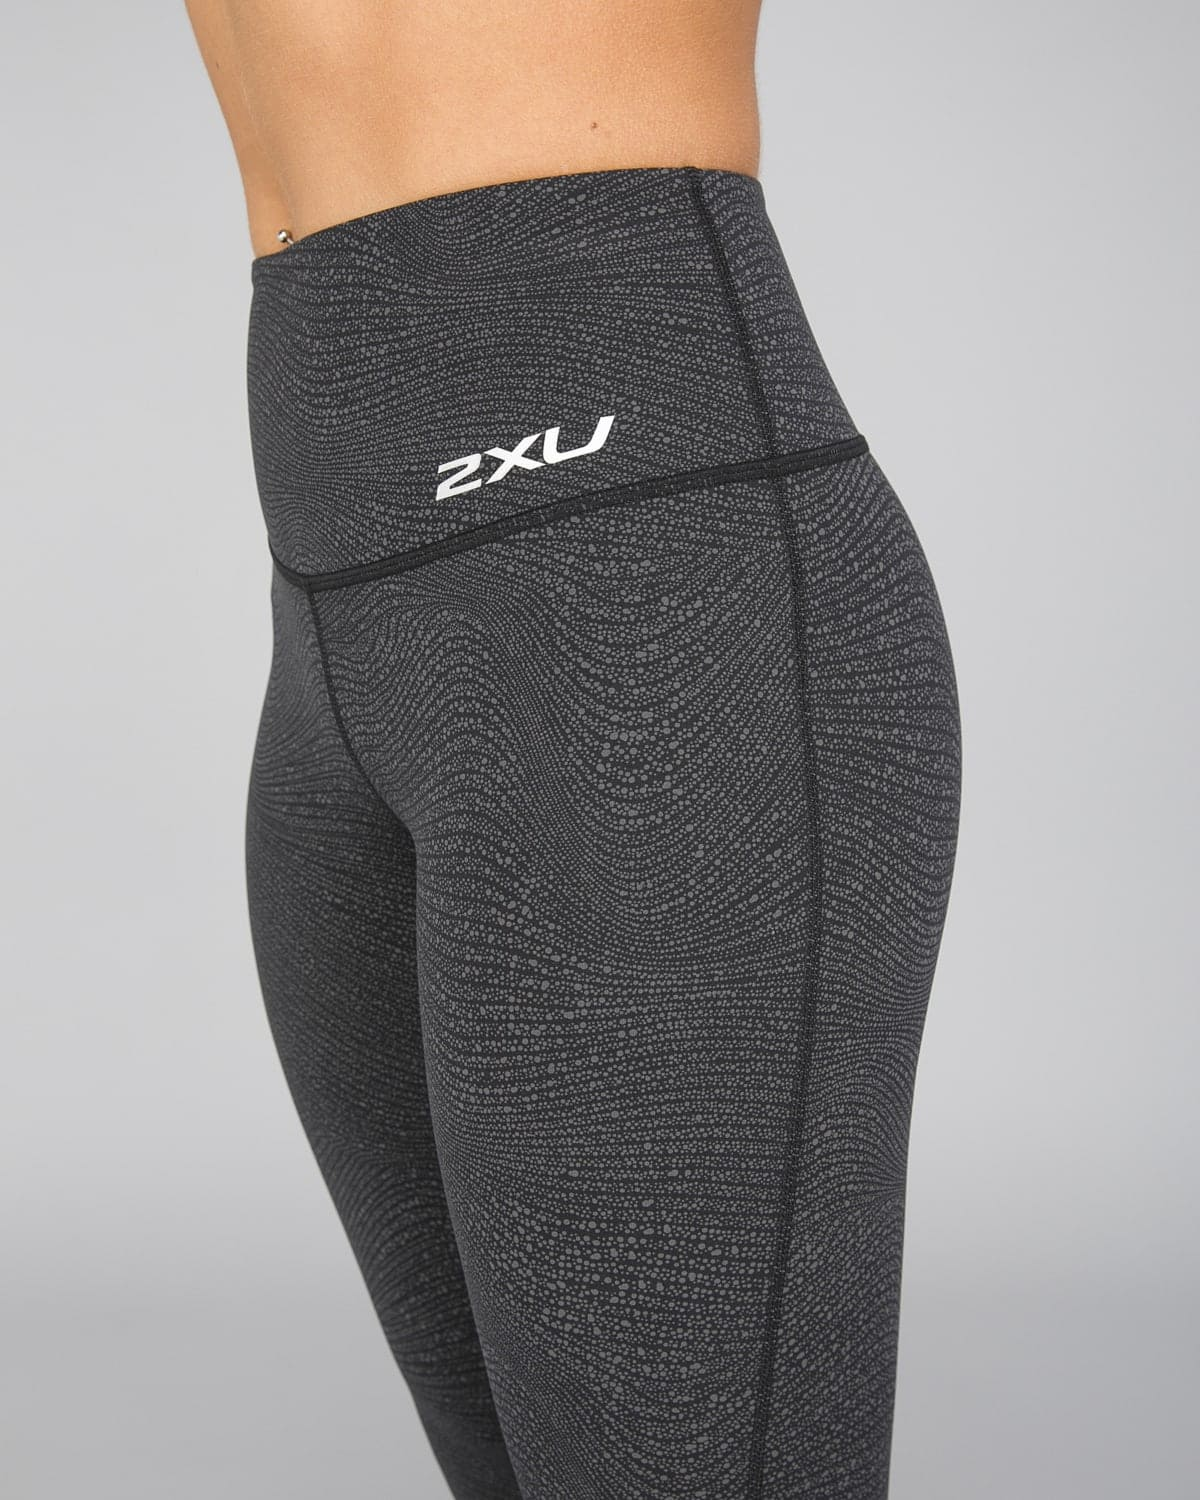 2XU Fitness Hi-Rise Comp Tights Women – Wave Spot Charcoal:Silver12